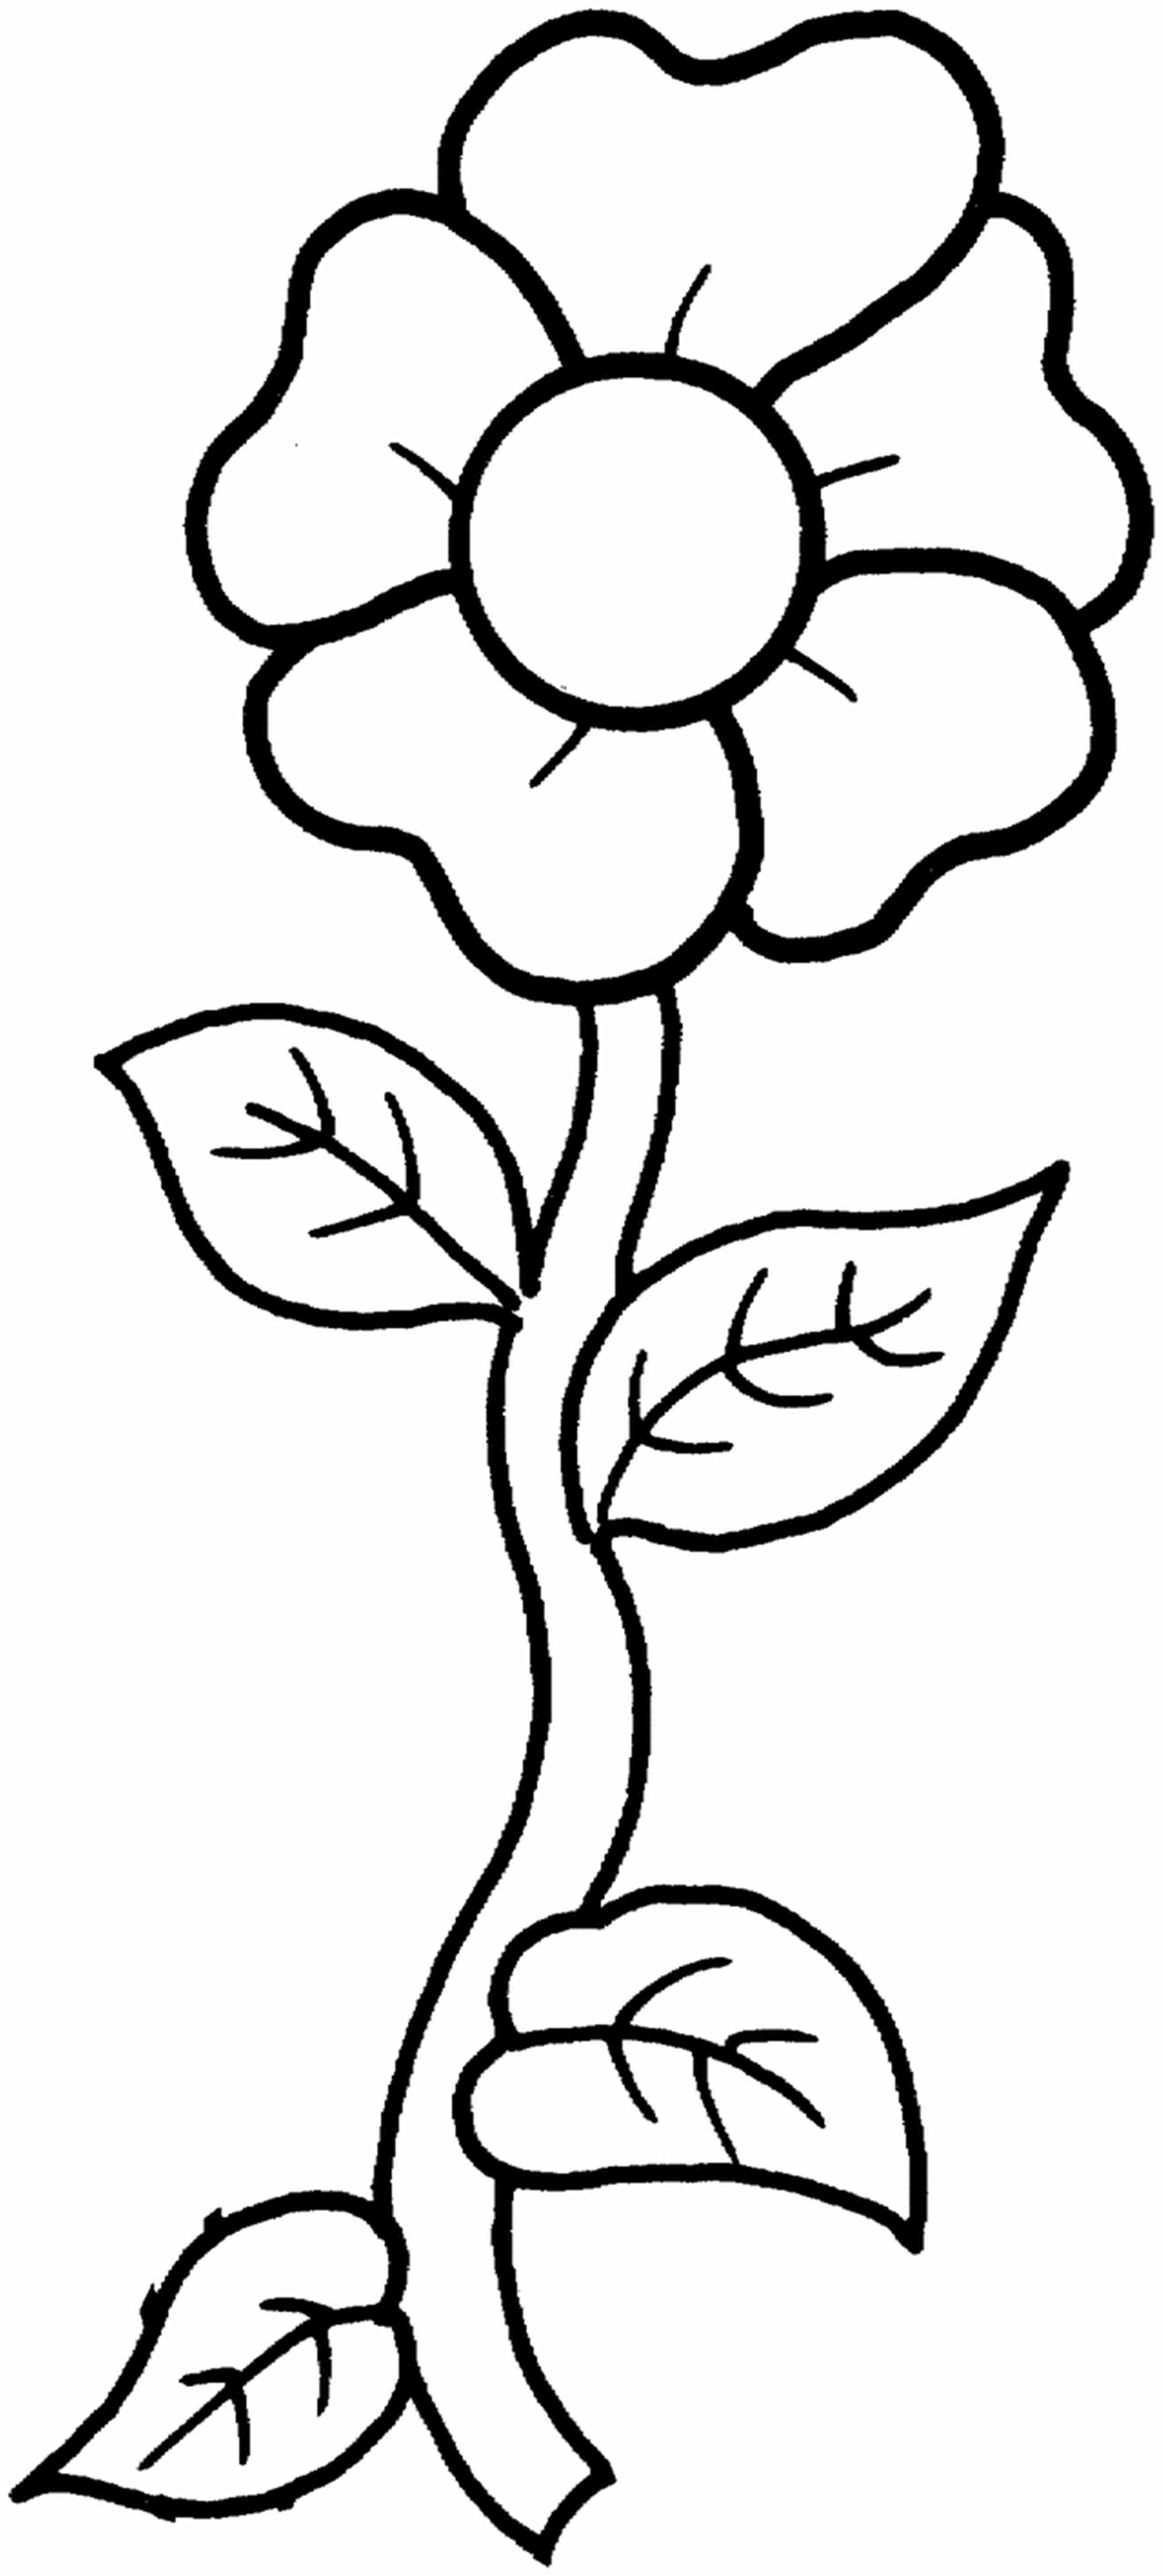 outline pictures of flowers for colouring free printable flower coloring pages for kids best of pictures flowers colouring for outline